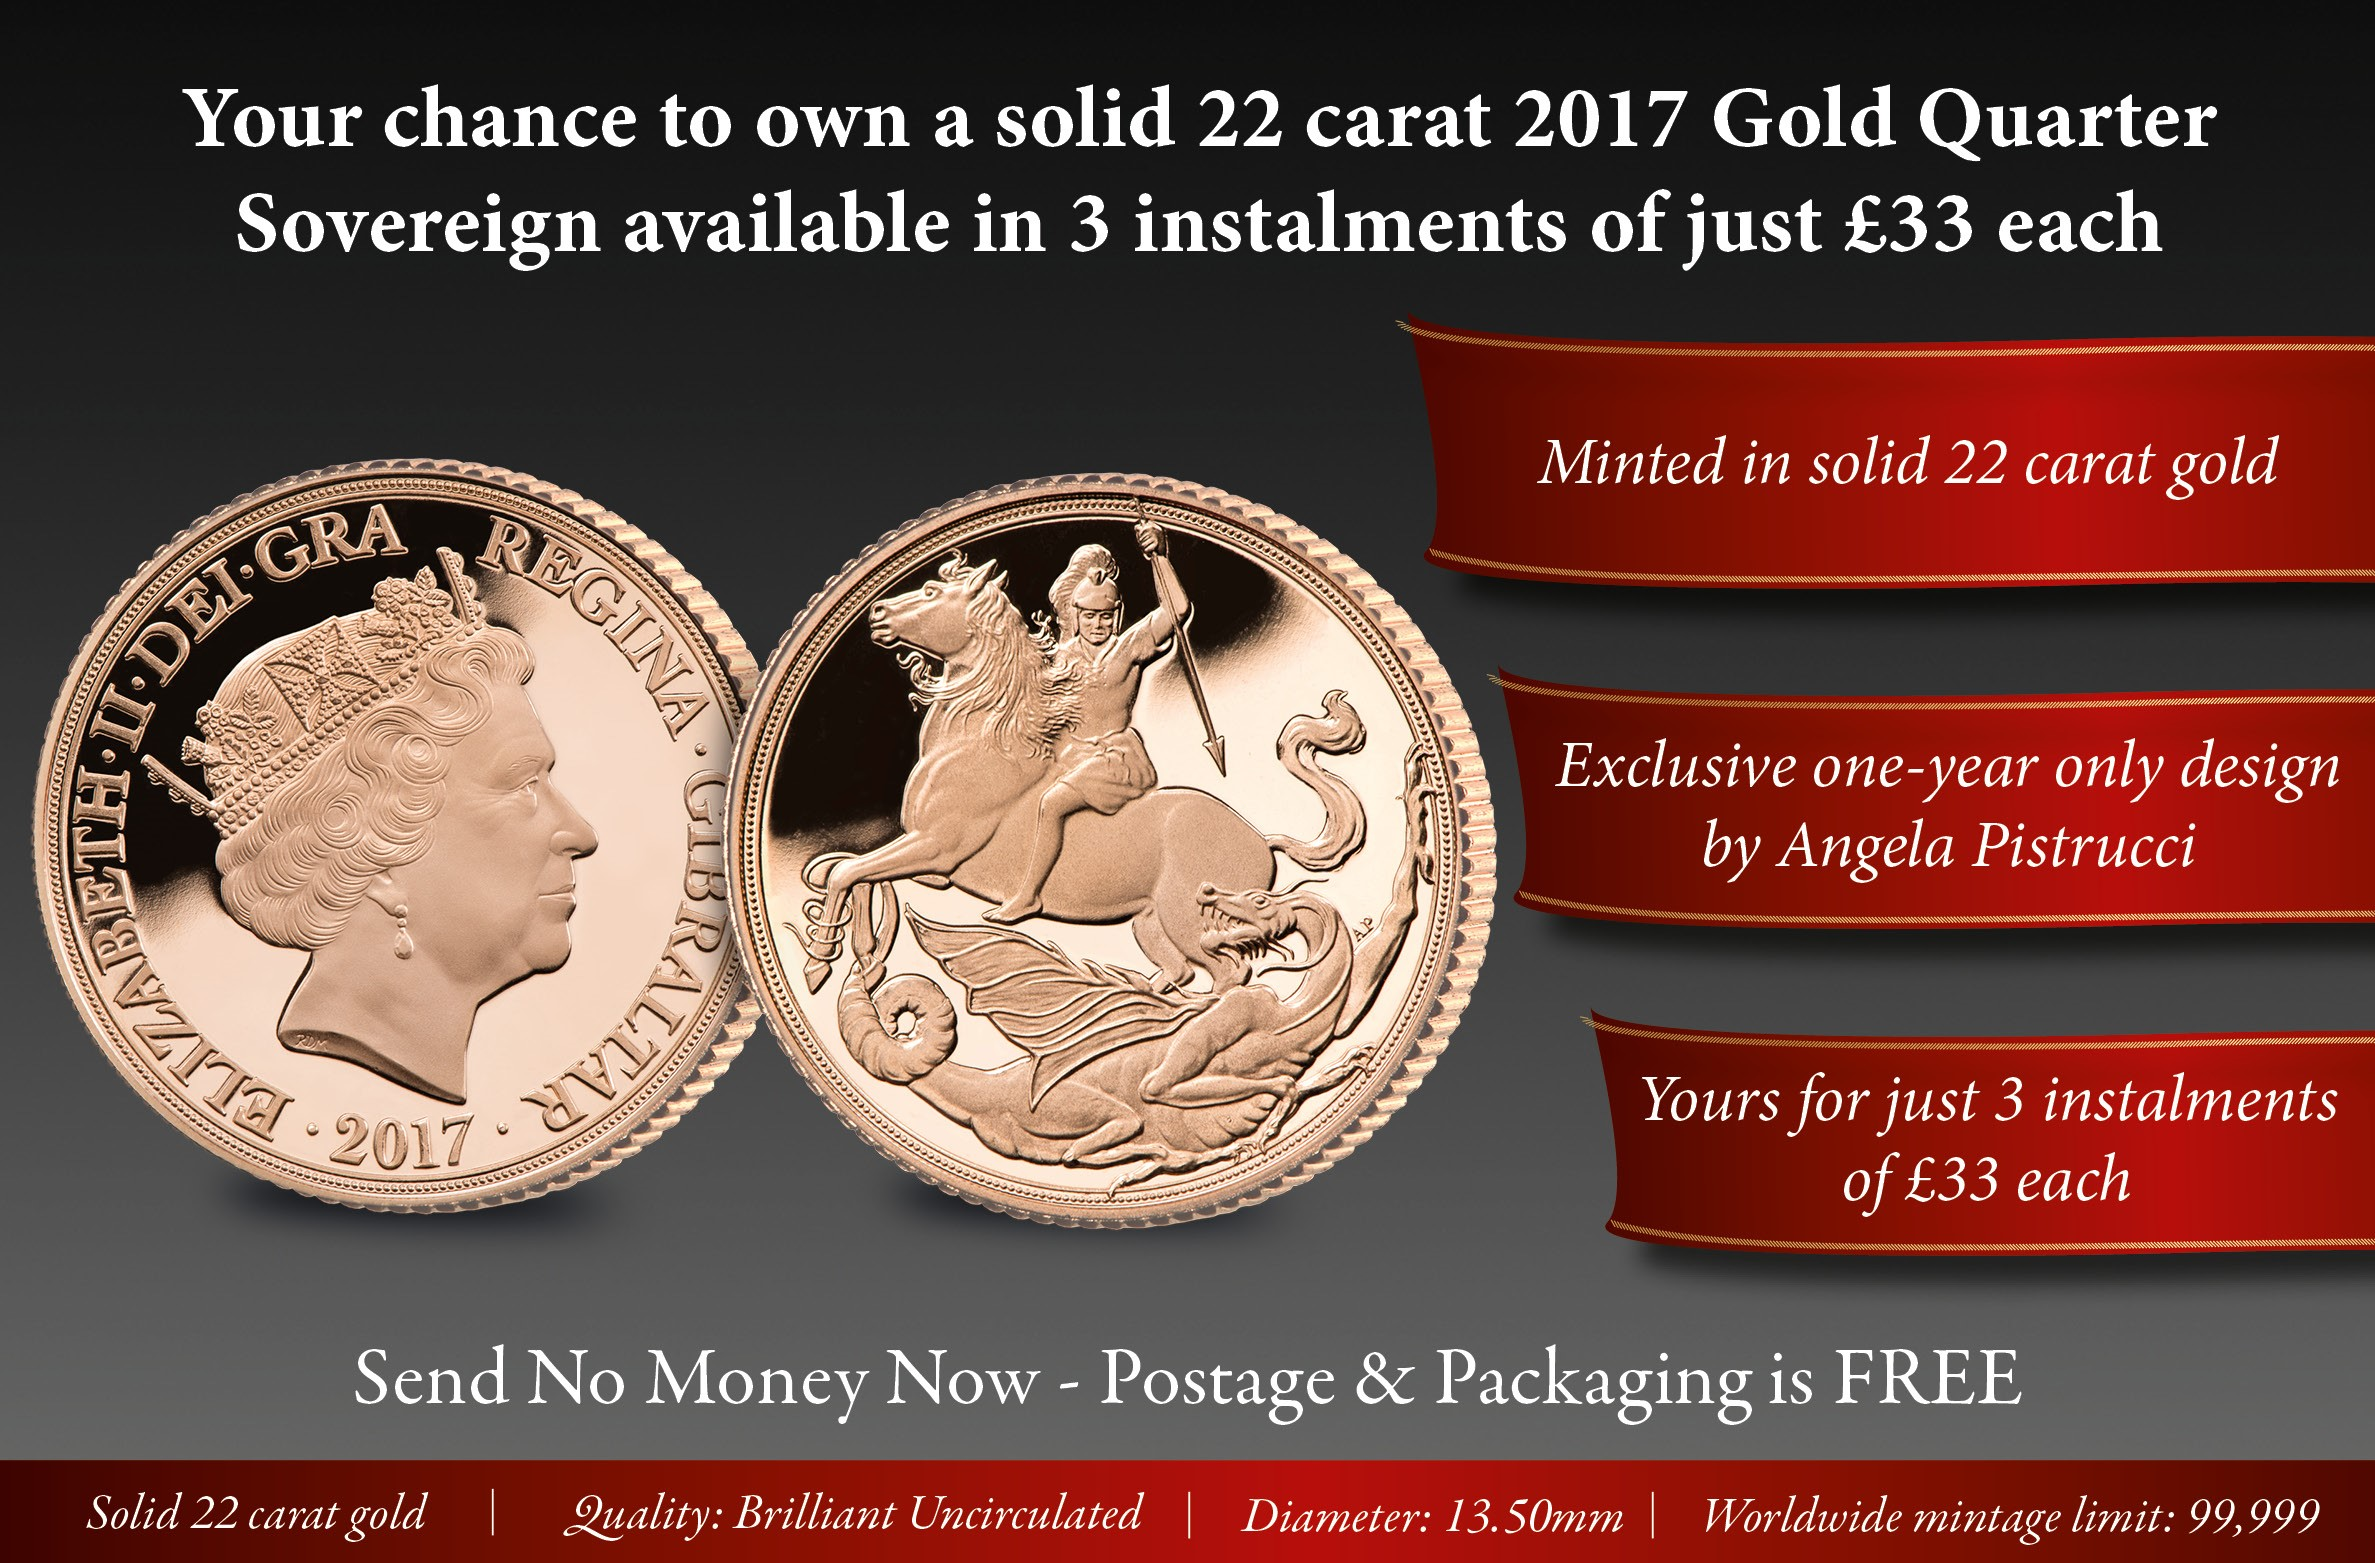 Your chance to own a solid 22 carat gold 2017 Quarter Sovereign